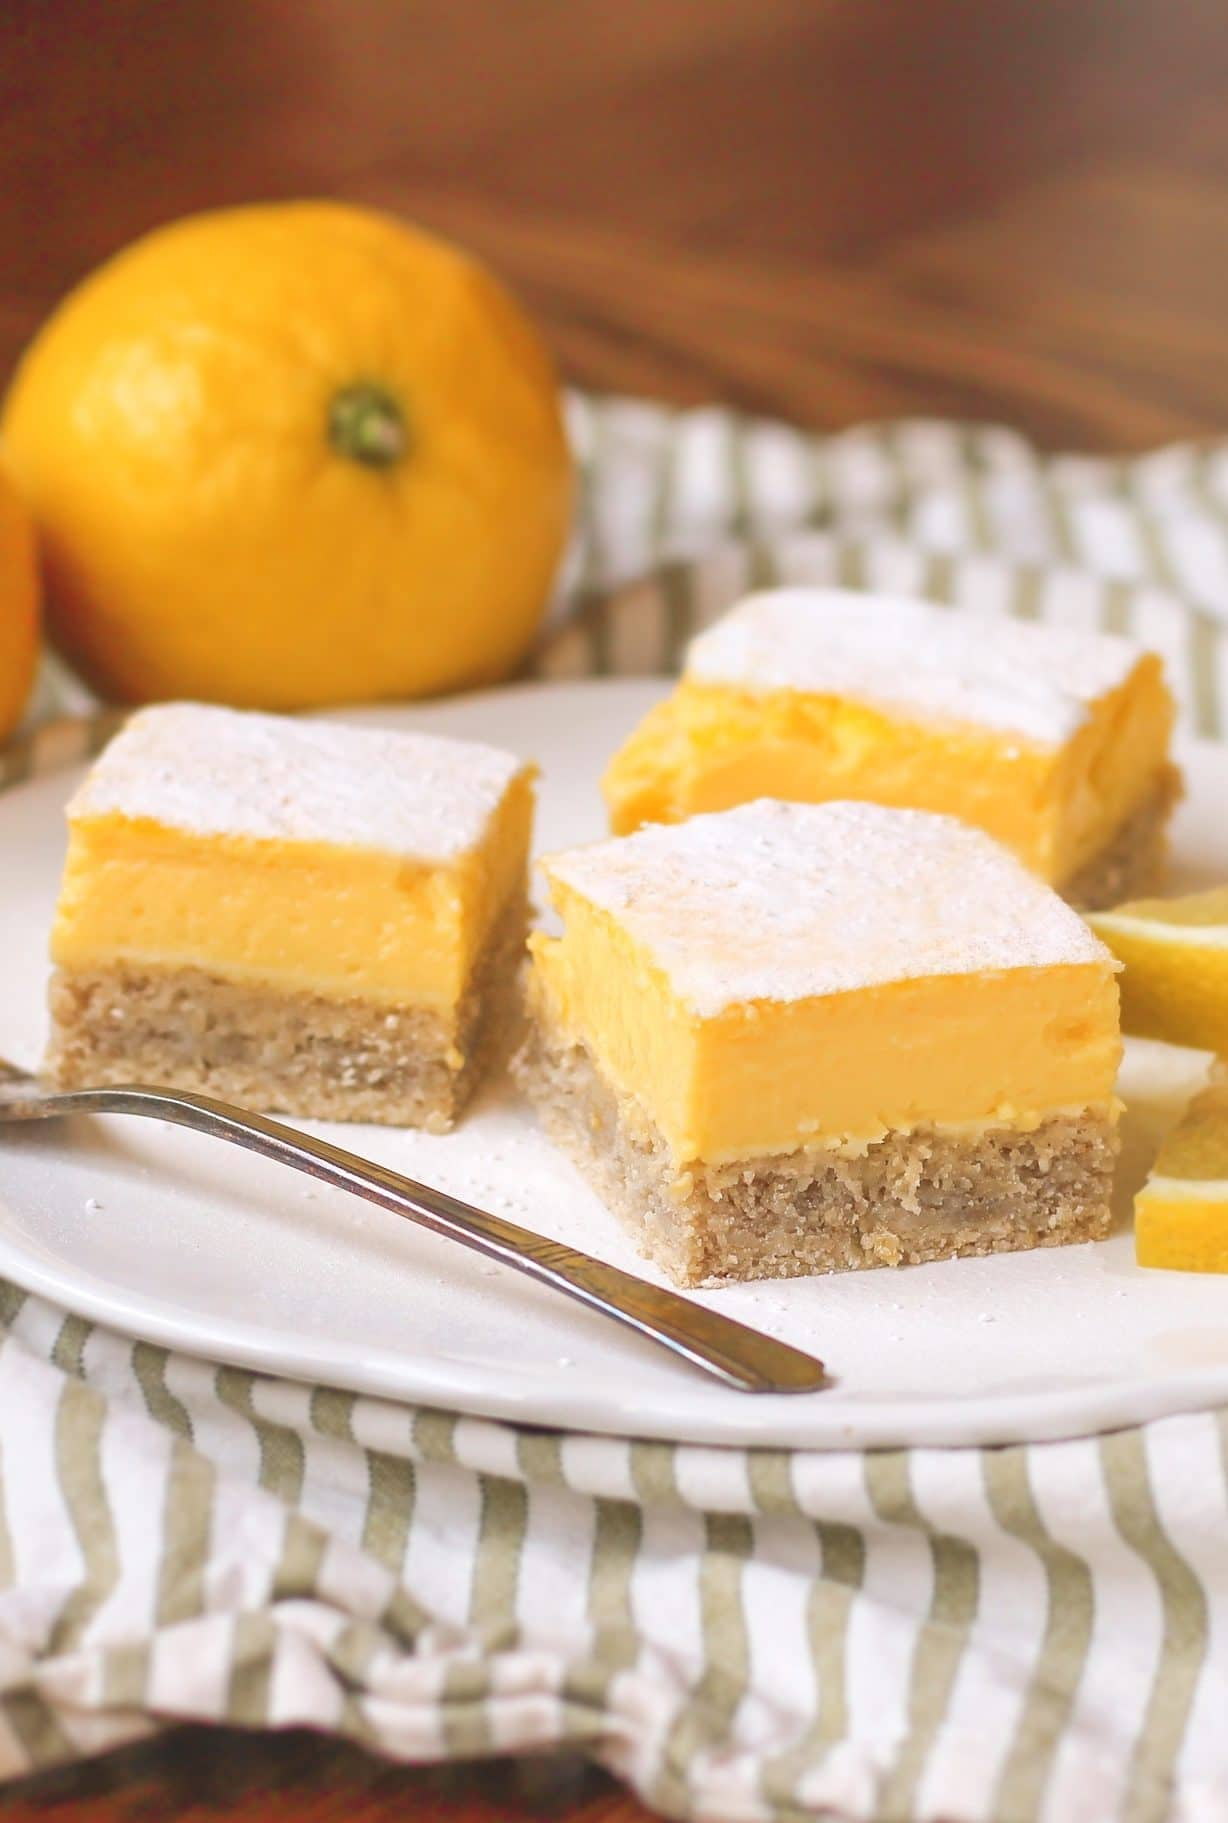 These delicious Lemon Bars are made without any sugar, butter, and flour, but they're just as tart and sweet as the original! You'd never know they're sugar free, gluten free, dairy free, and high protein too!